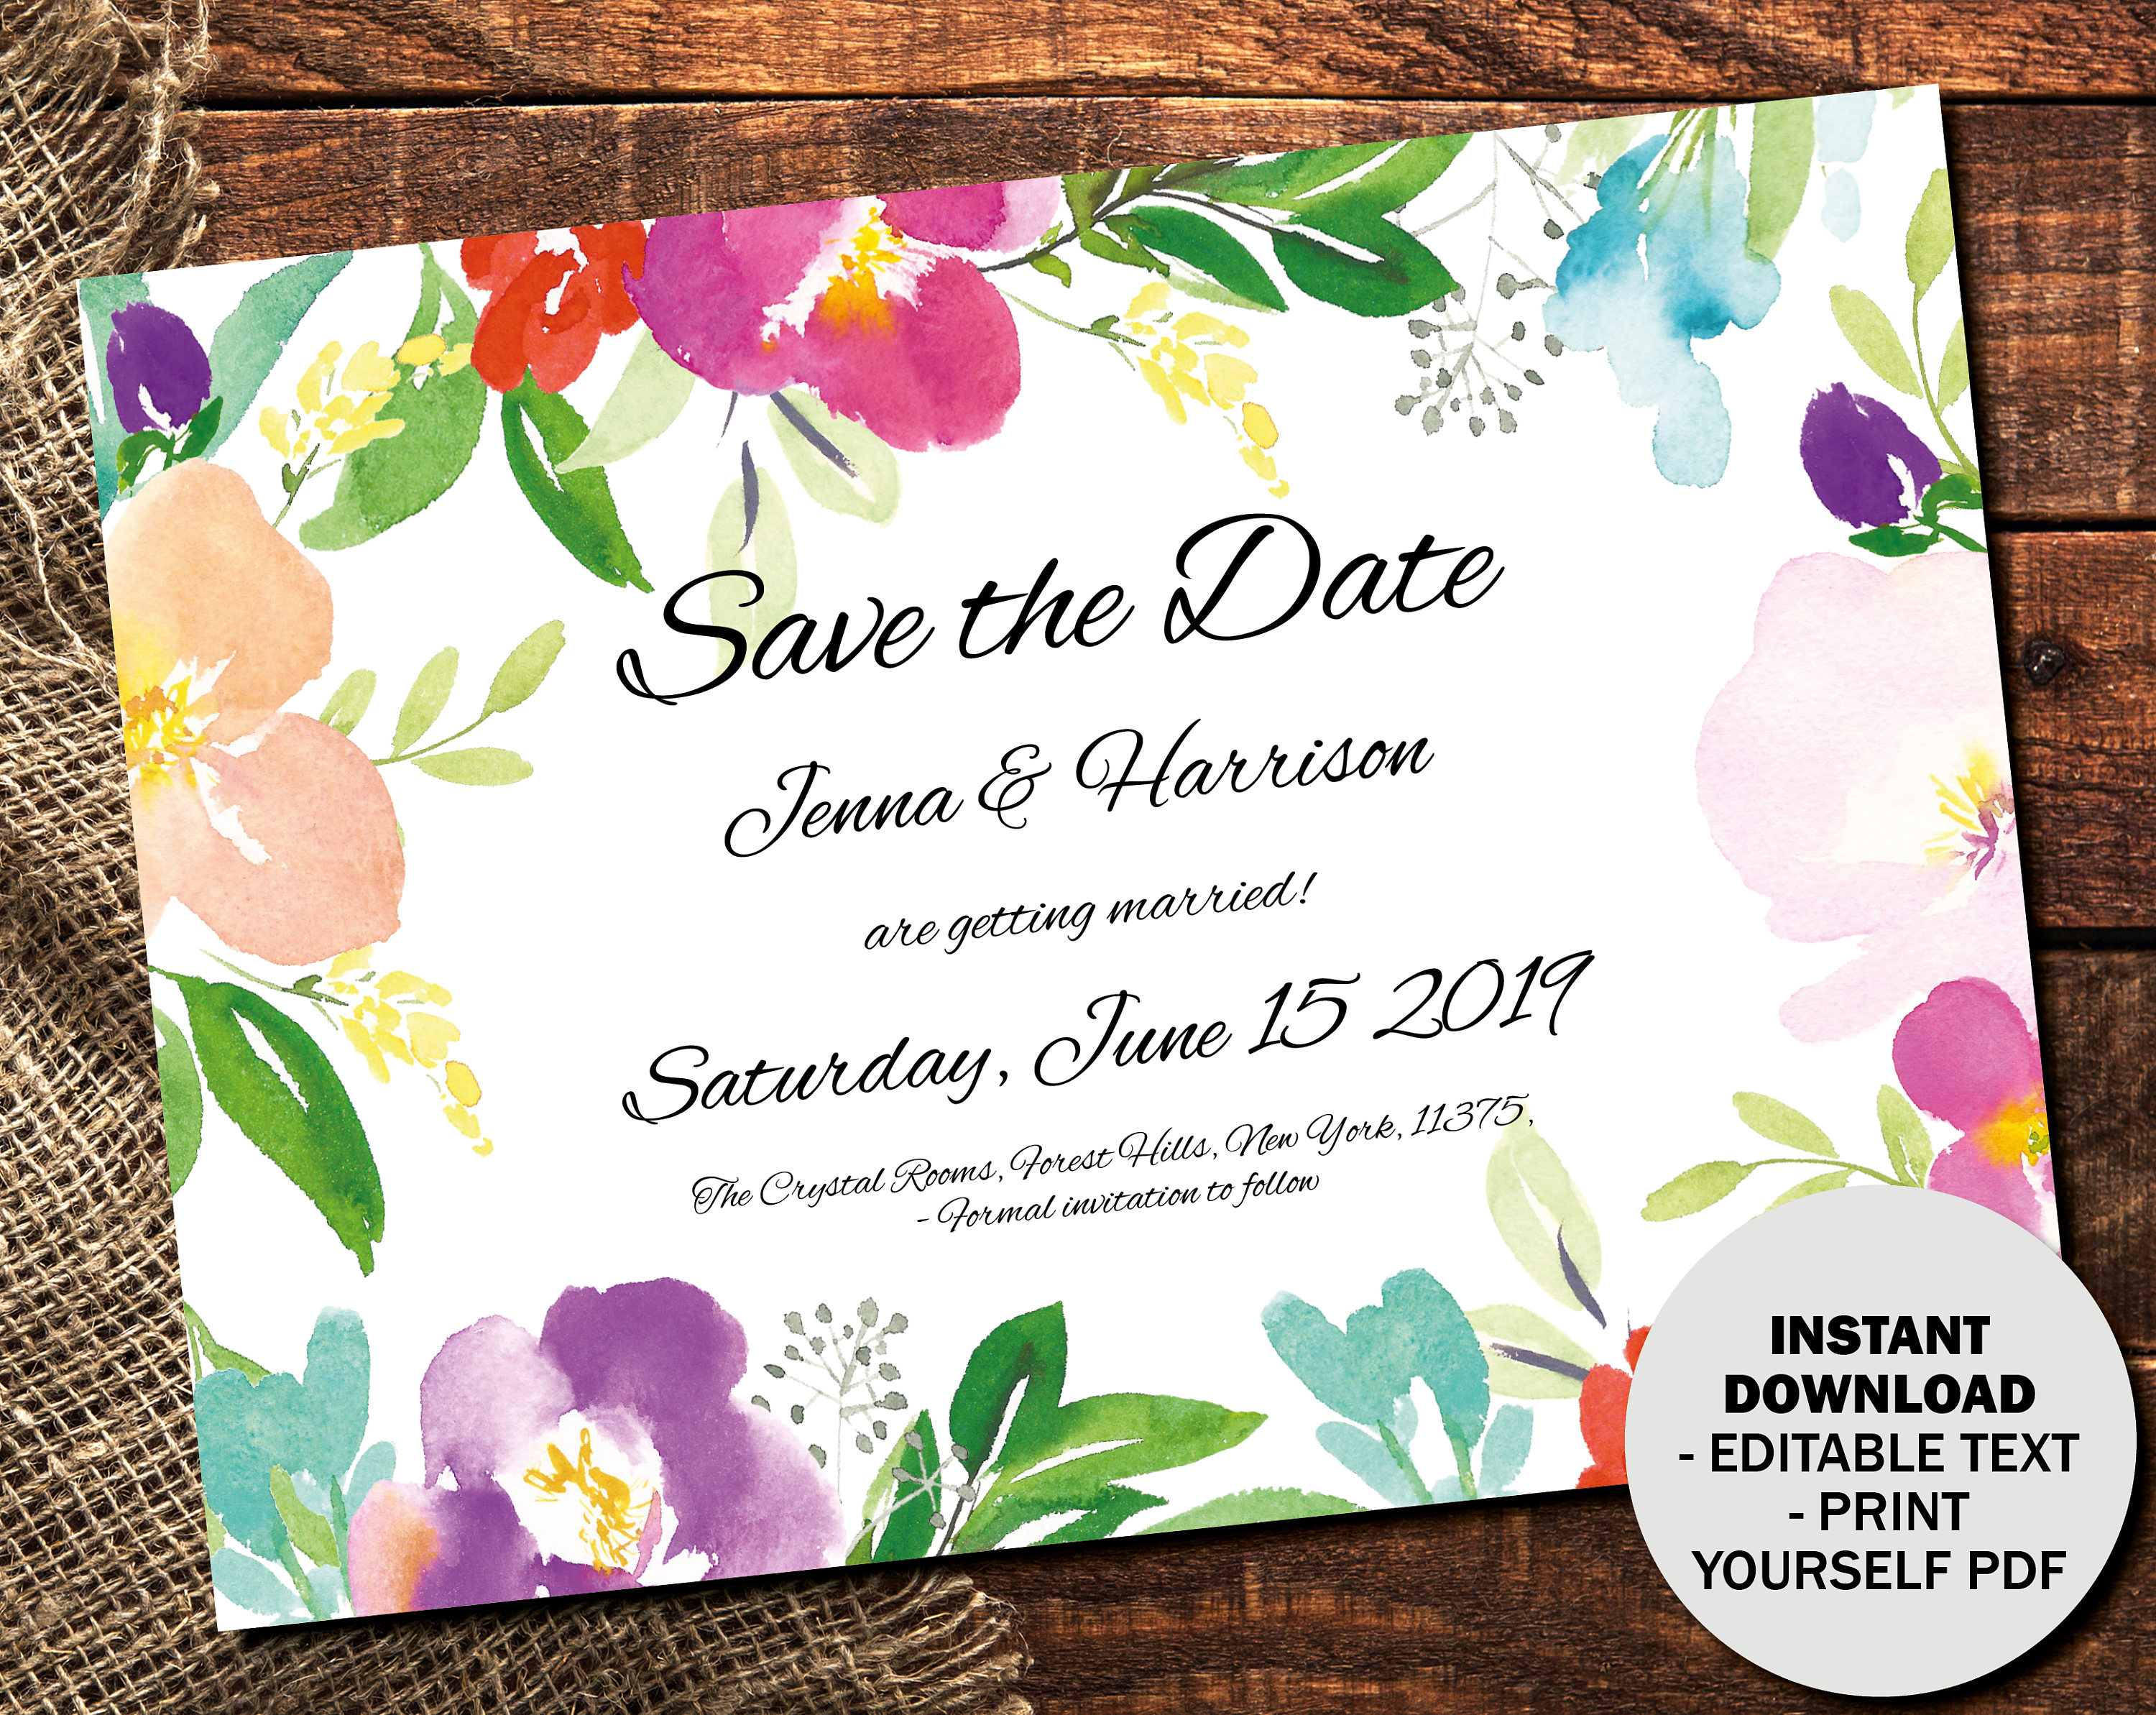 Wedding Save the Date Template Printable Wedding Save the Date Editable Save the Date PDF DIY Save the Date Watercolor Border 1  SAVE1